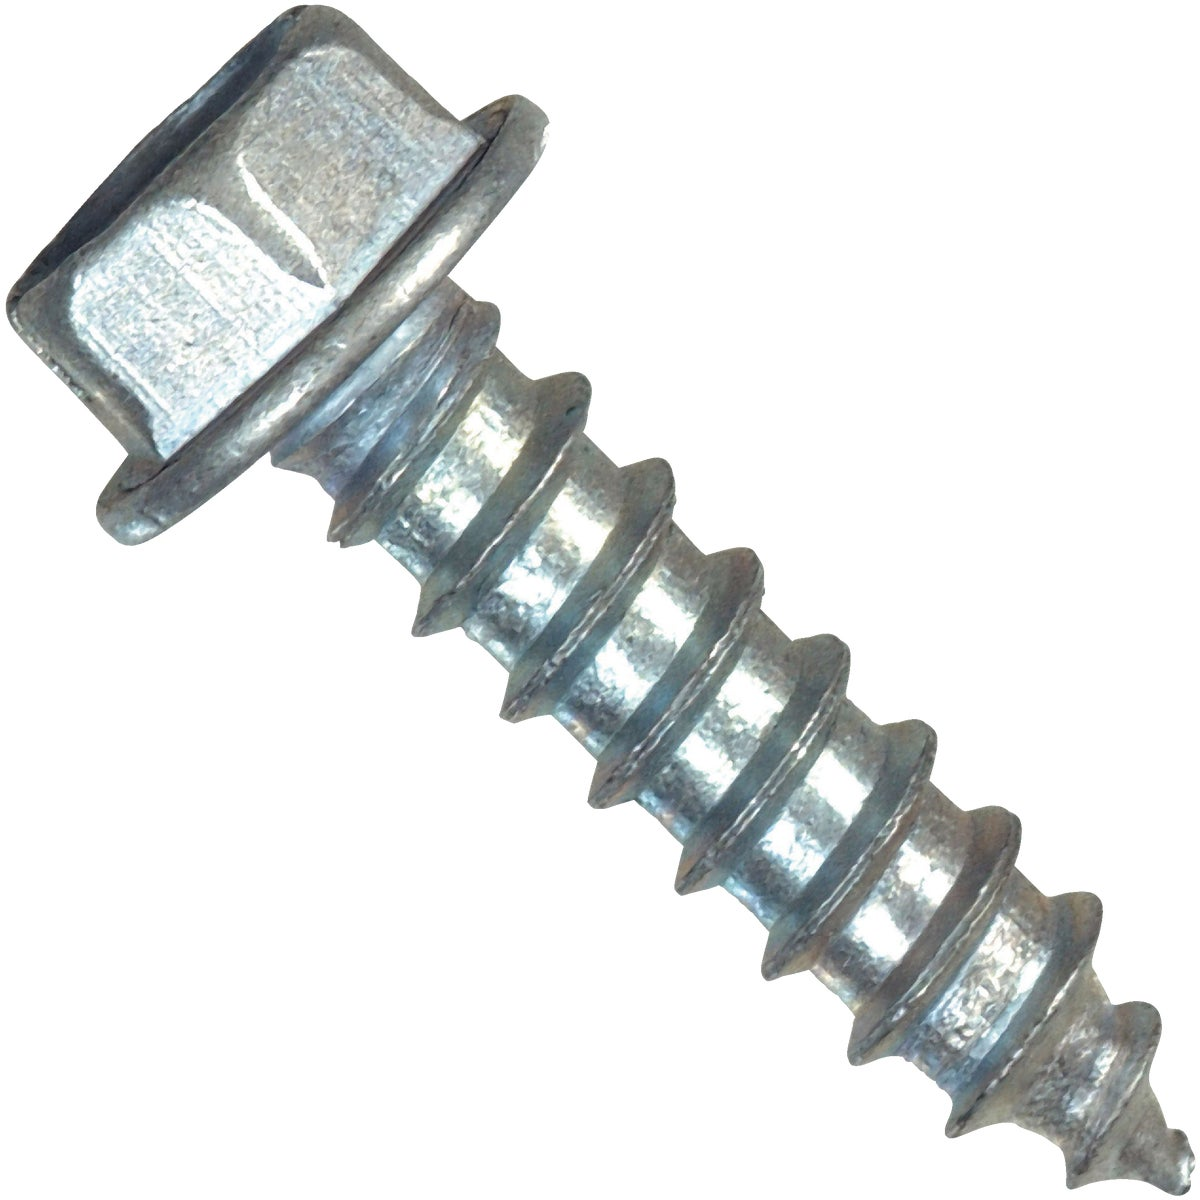 12X1-1/4 HWH ST MT SCREW - 70319 by Hillman Fastener